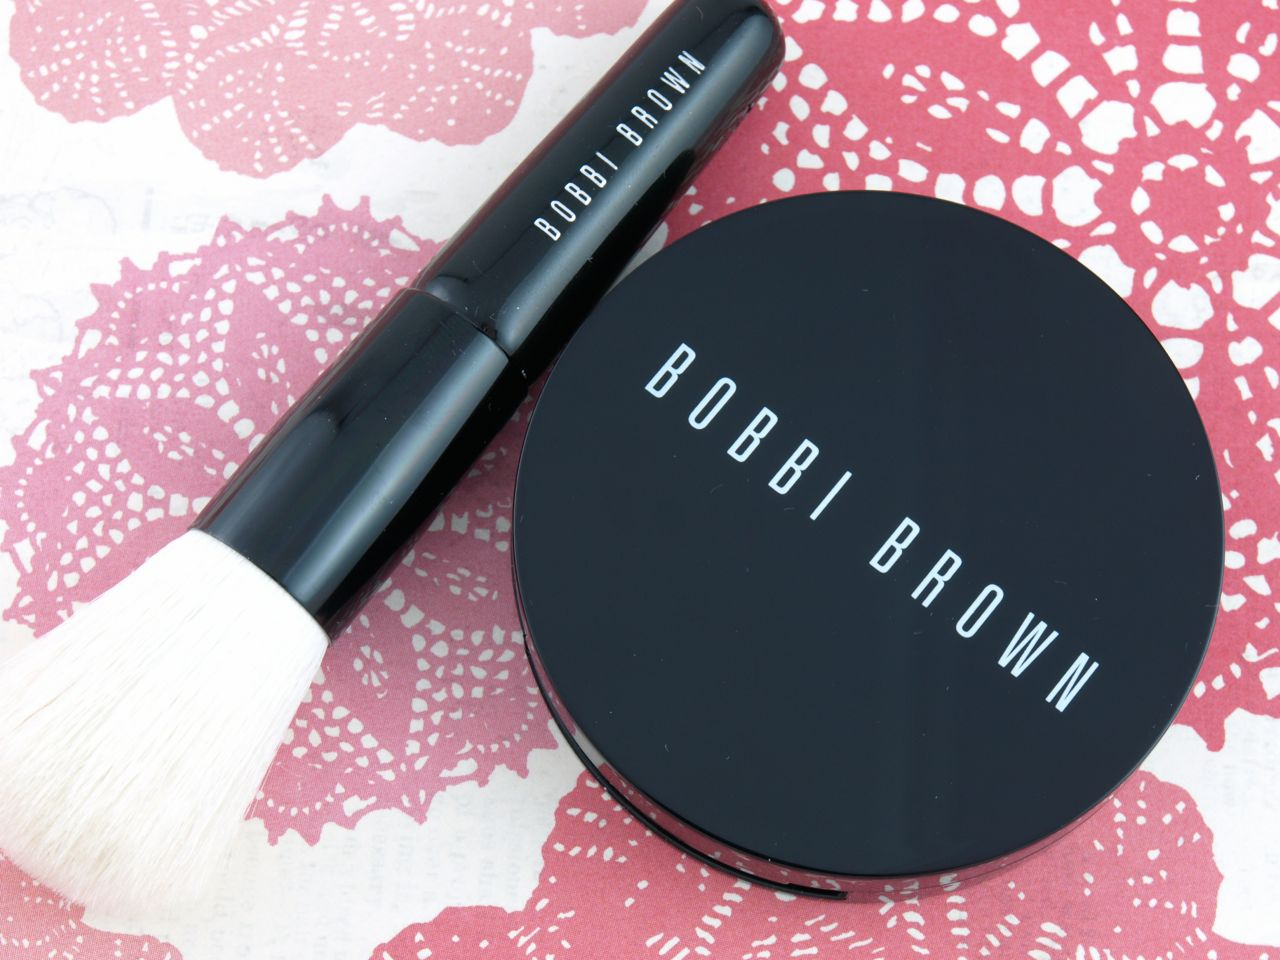 Bobbi Brown Peony Blush Set: Review and Swatches